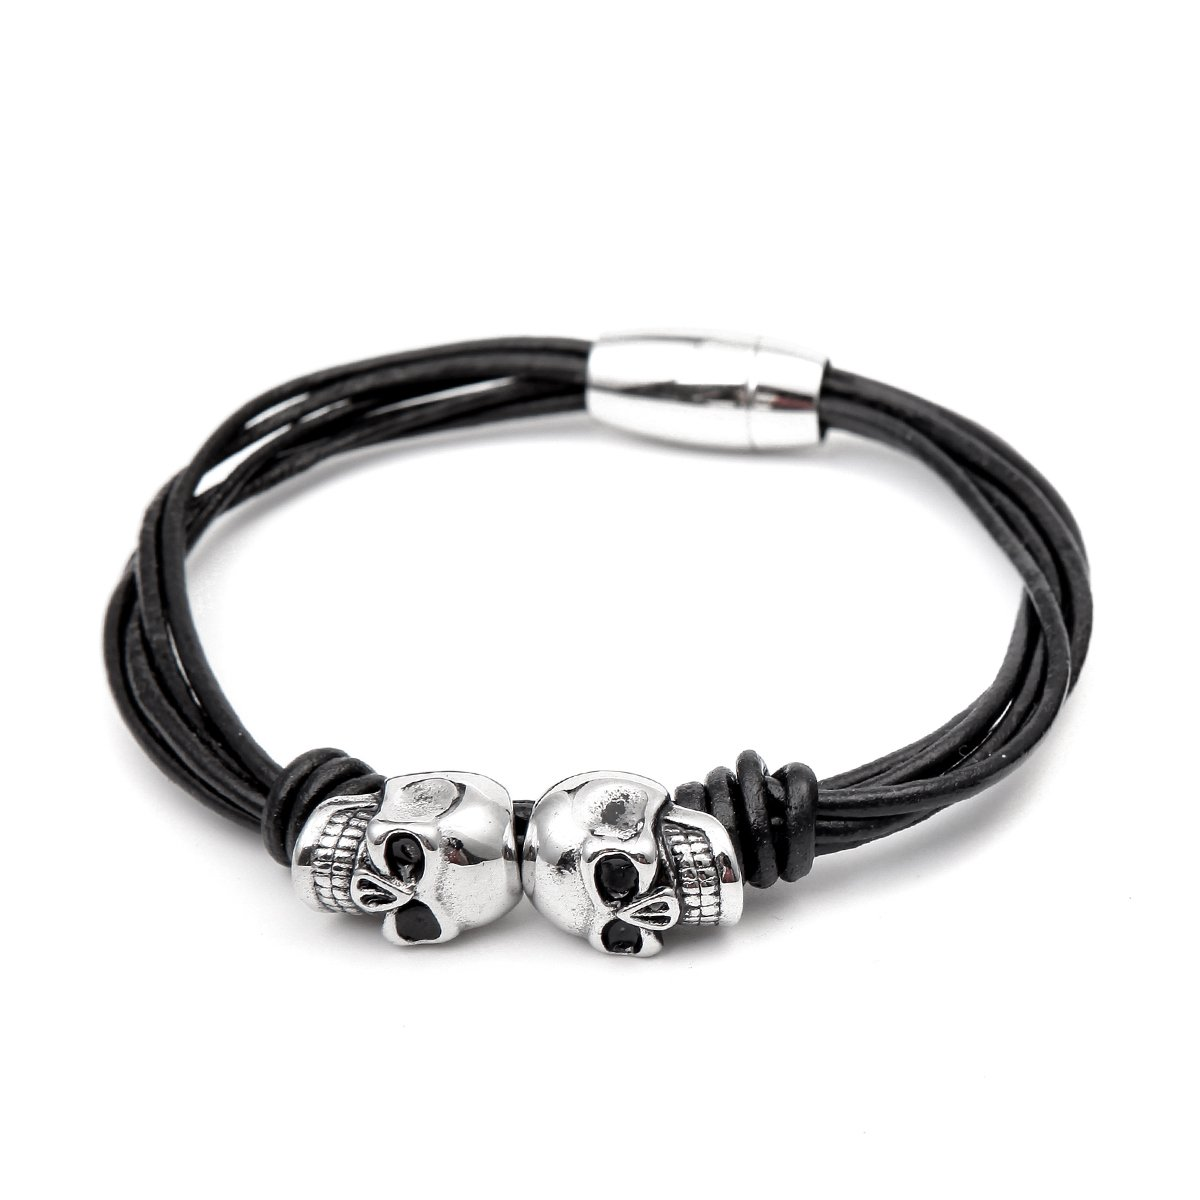 ICONIC Men's Leather Rope Bracelet Silver Plated Stainless Steel Bracelet with Two Skull Charms